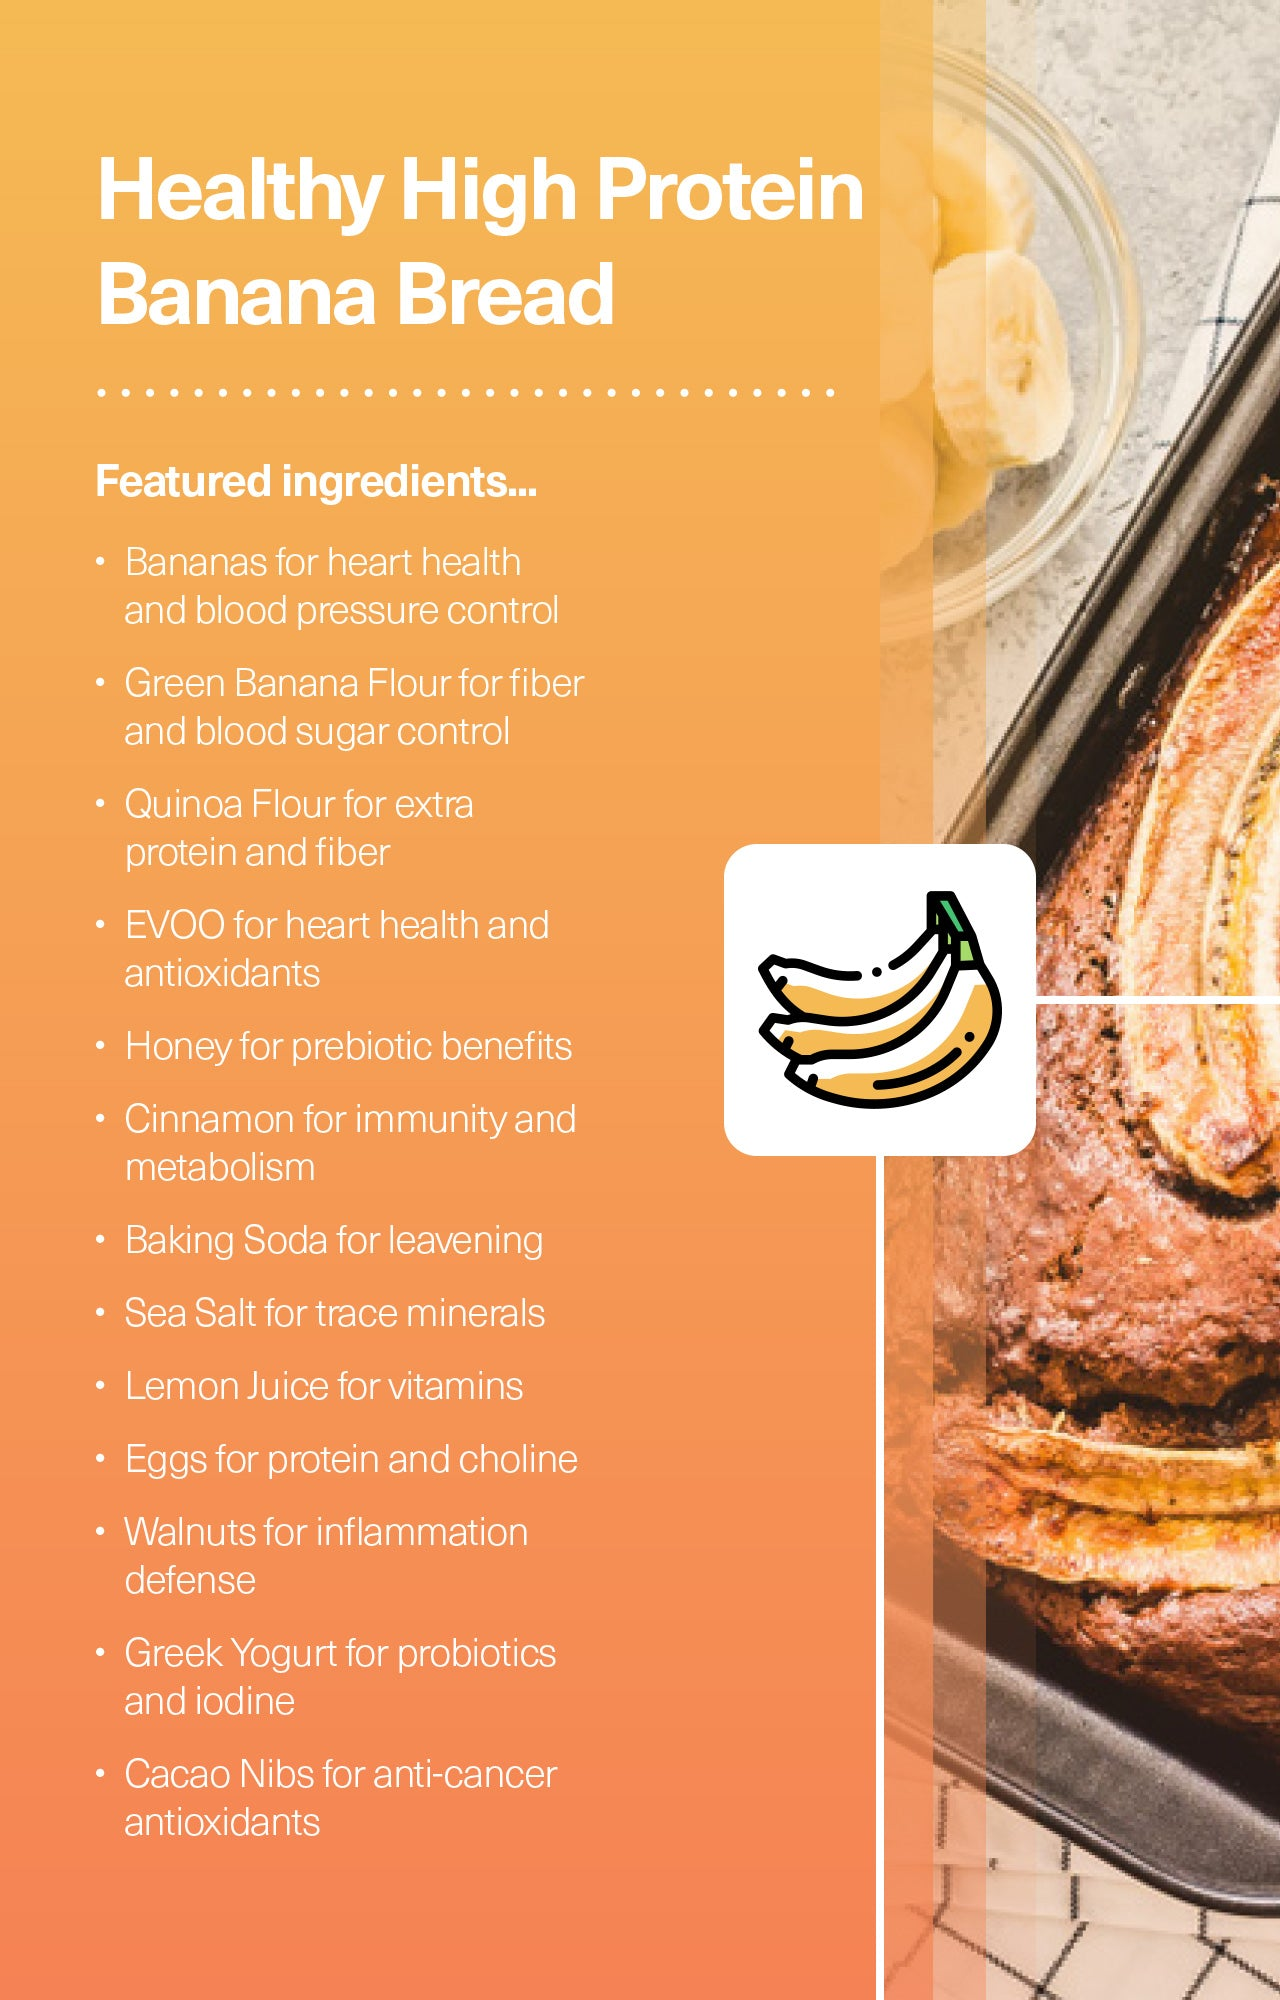 Healthy High Protein Banana Bread Ingredients